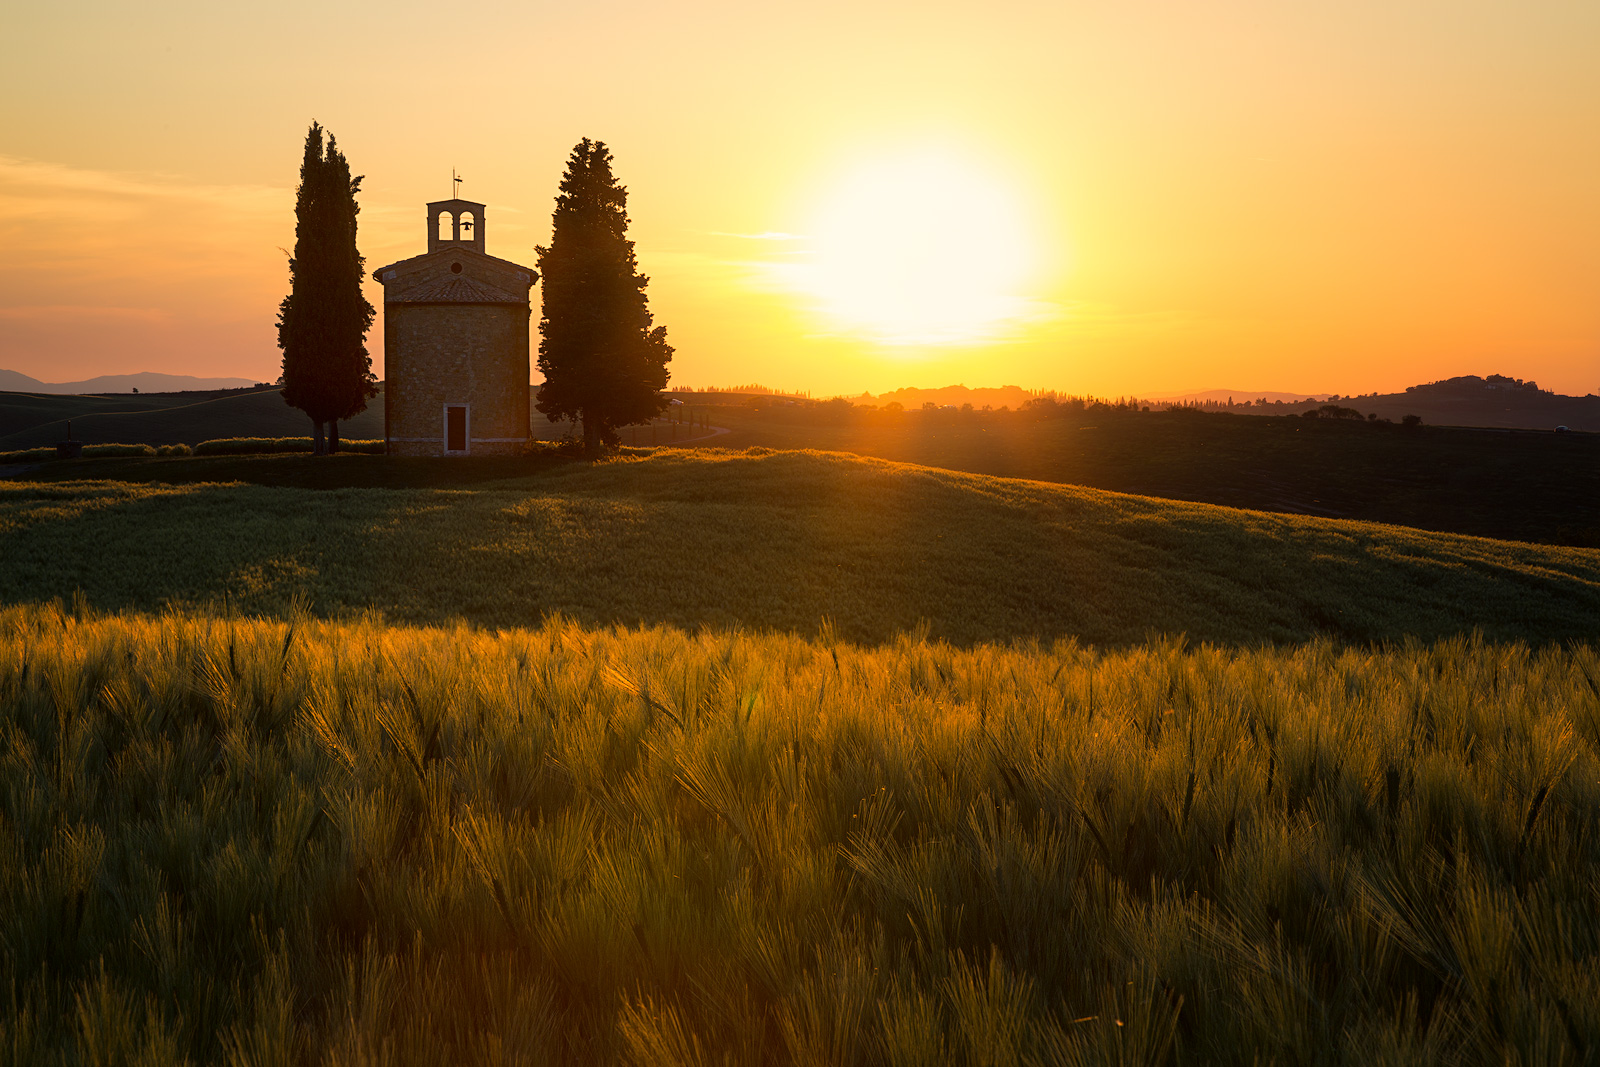 2016,May,Spring,cyprus,europe,evening,fog,foggy,gold,golden,hills,horizontal,italy,landscape,mist,misty,rolling,sunset,tree,trees,tuscany,val d'orcia,val dorcia,vitaleta church,wheat fields, photo